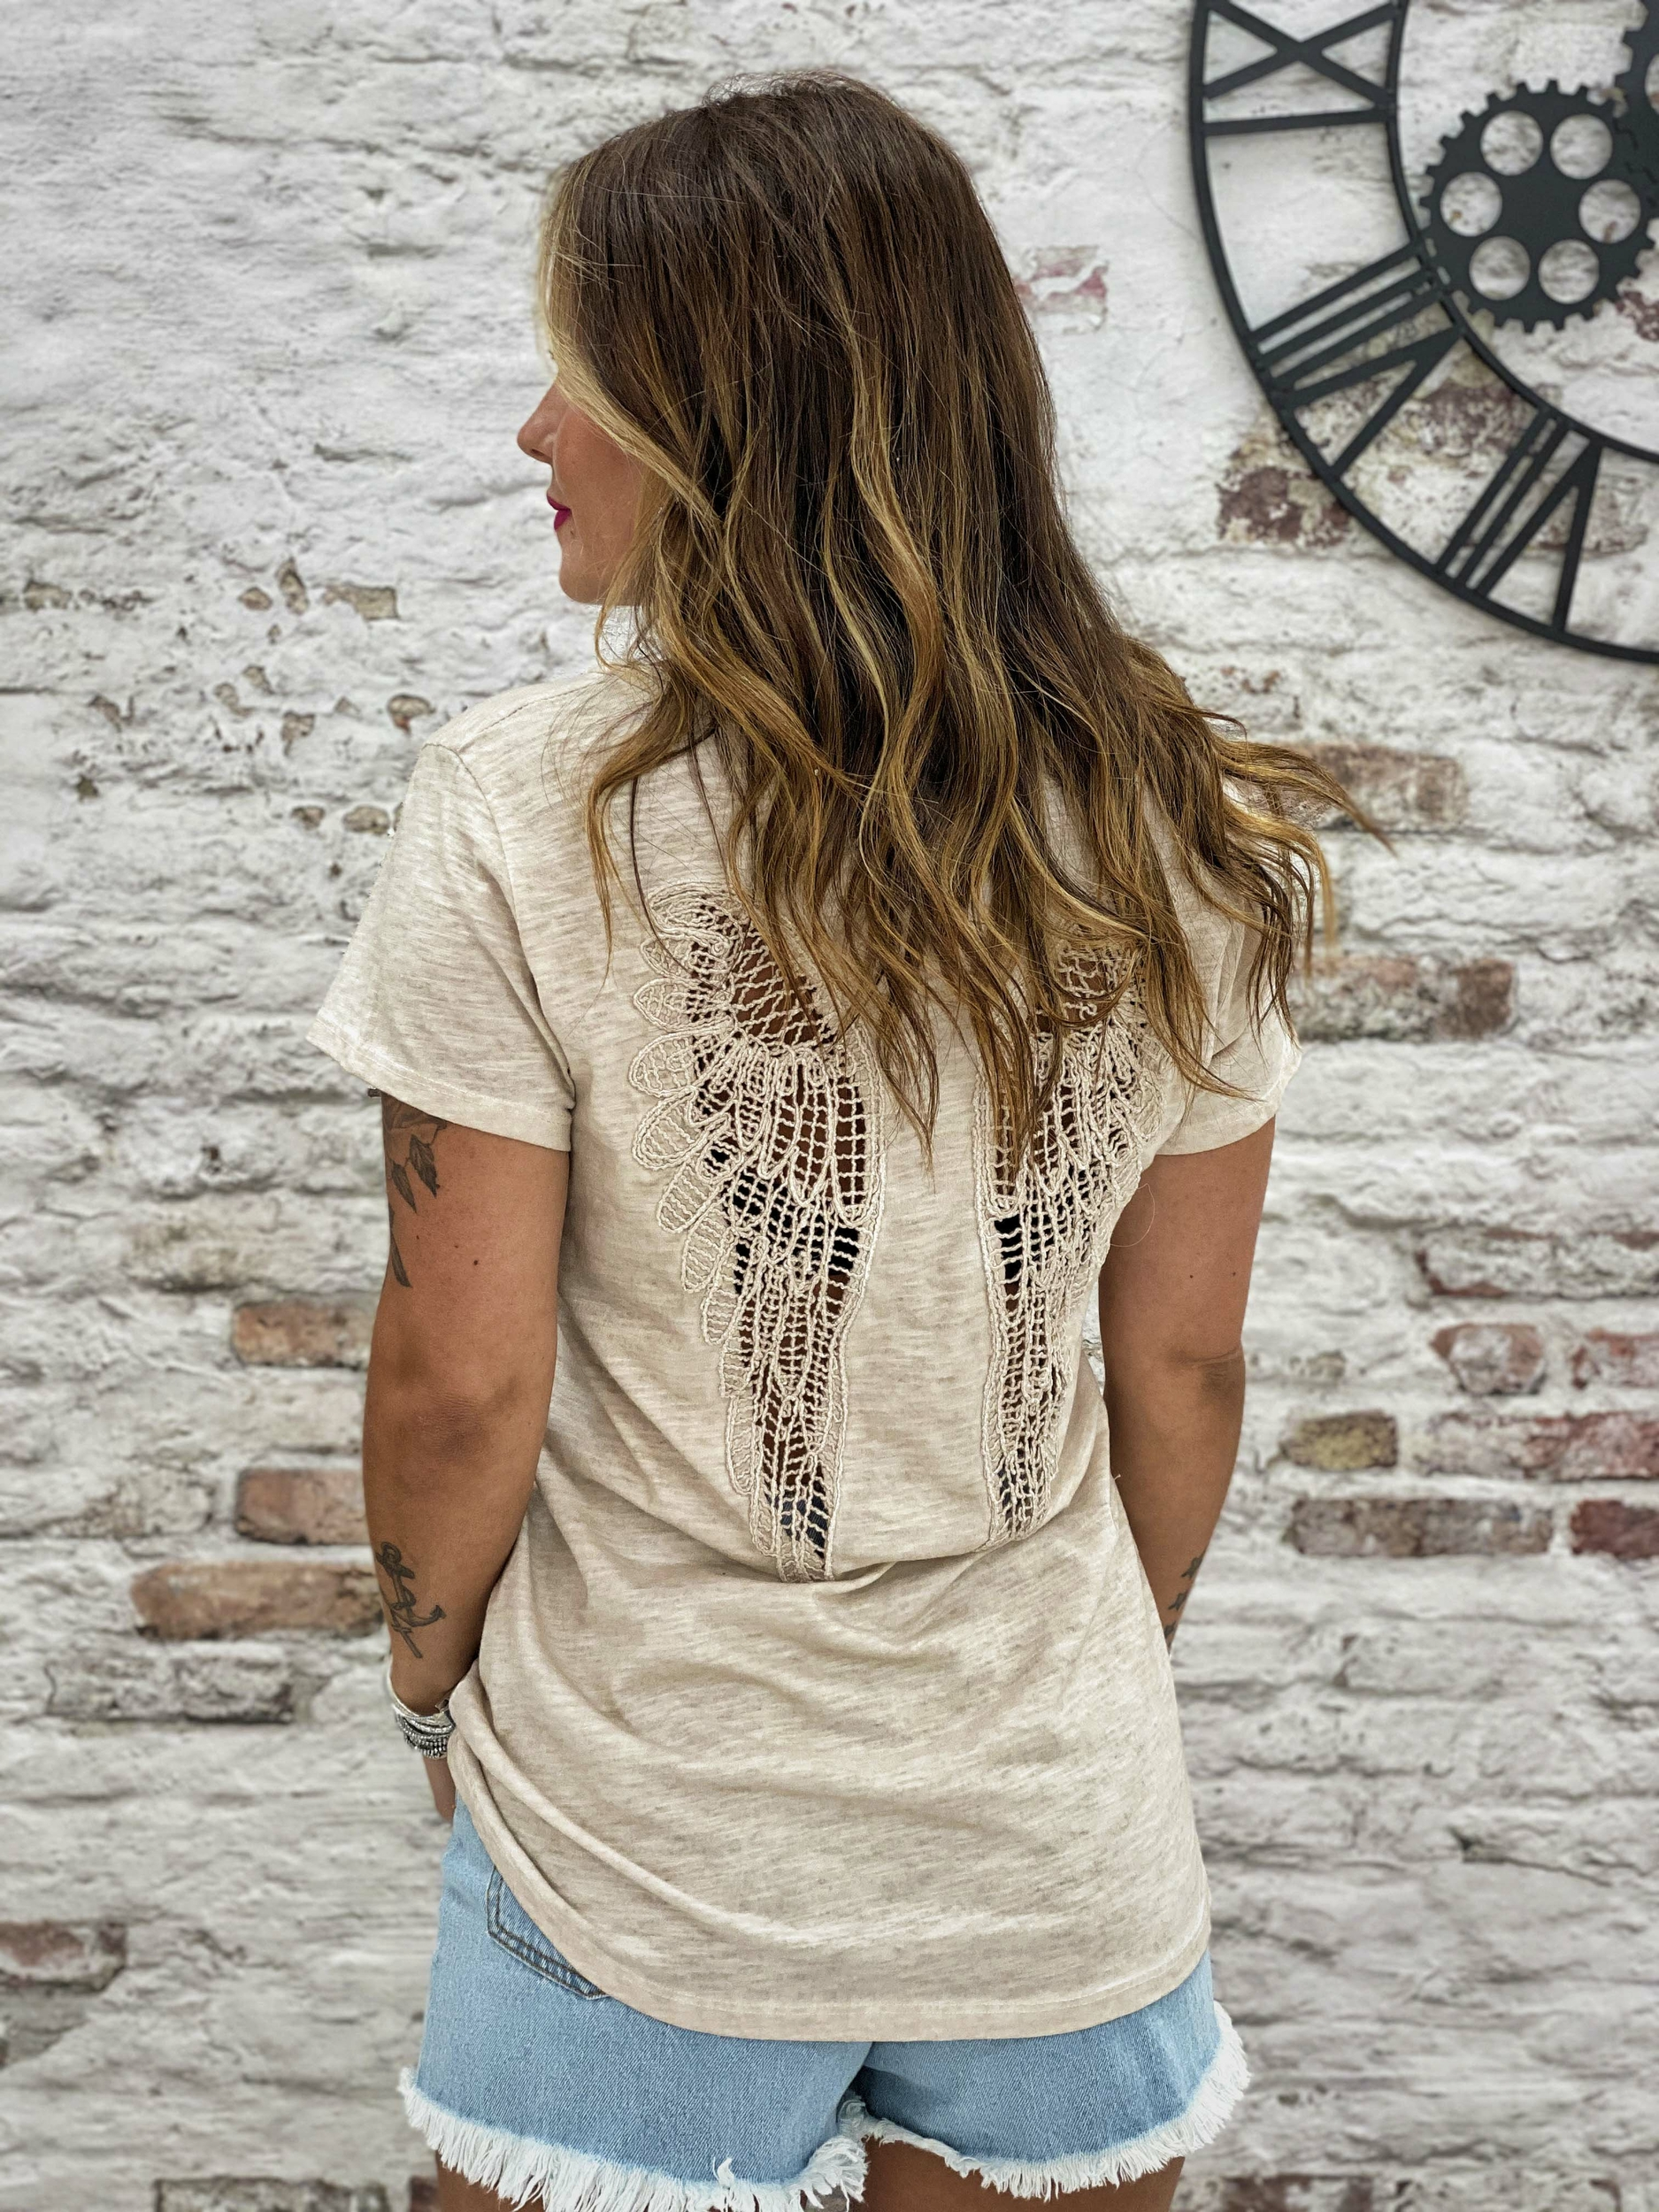 T-shirt FREE beige Chantal B